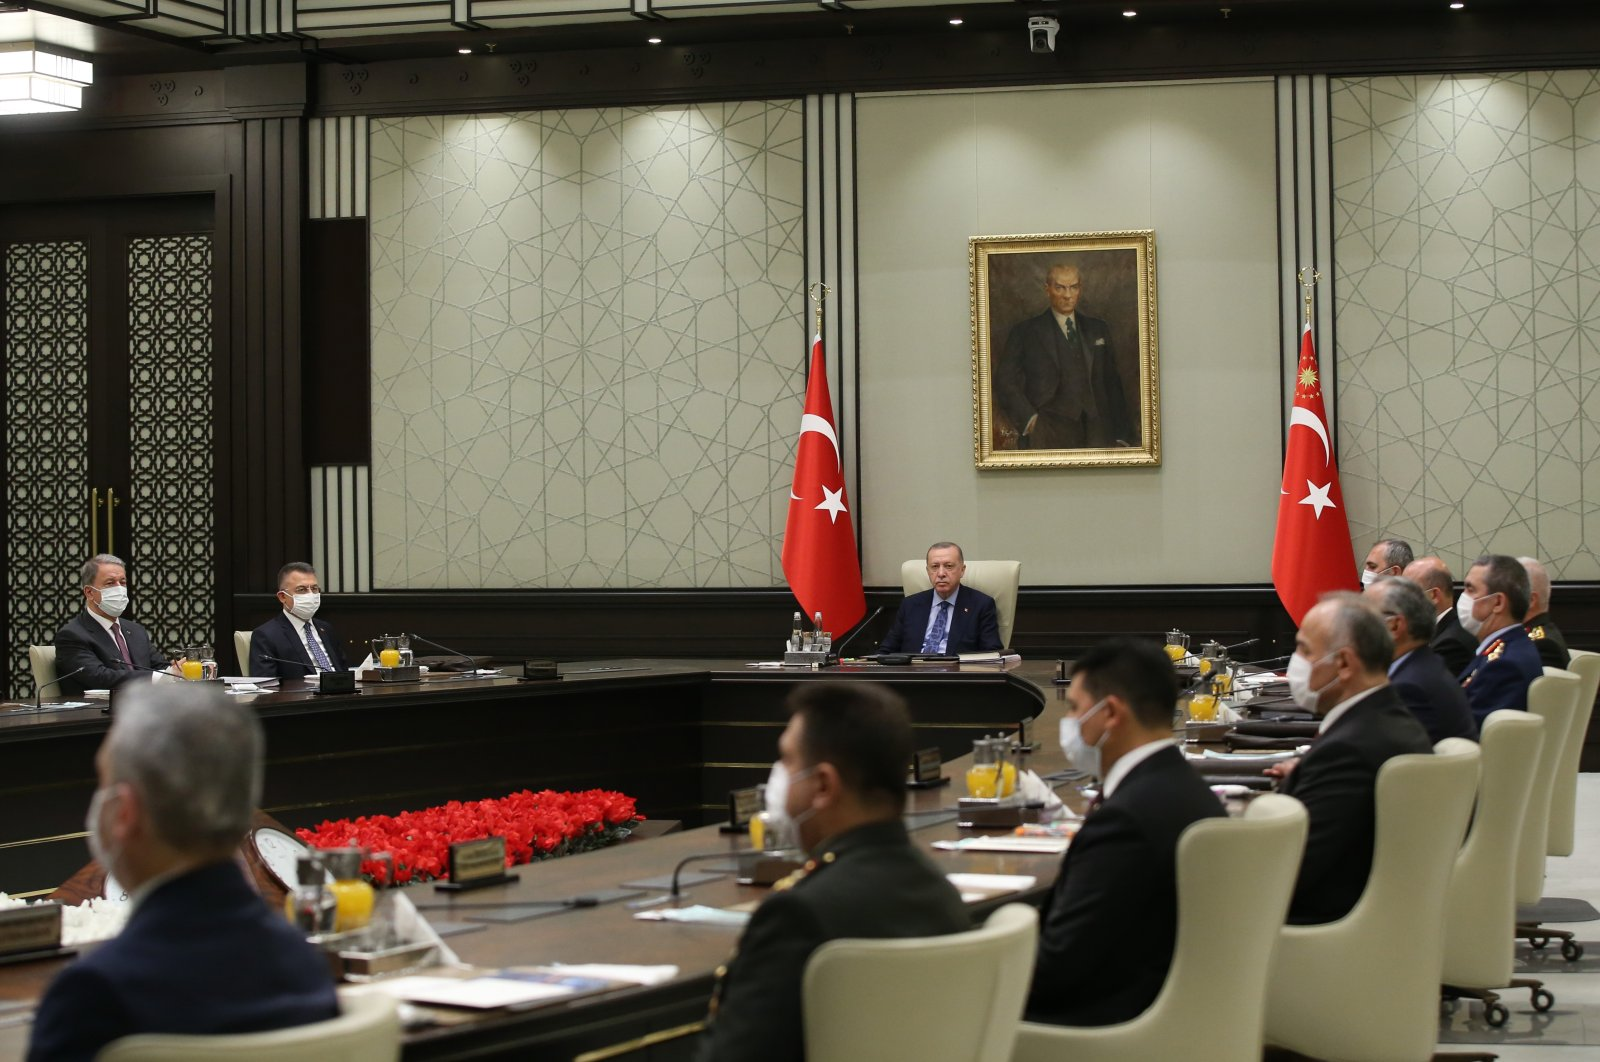 President Recep Tayyip Erdoğan and Ministers during the MGK meeting in Ankara's Presidential Complex, July 22, 2020 (AA Photo)